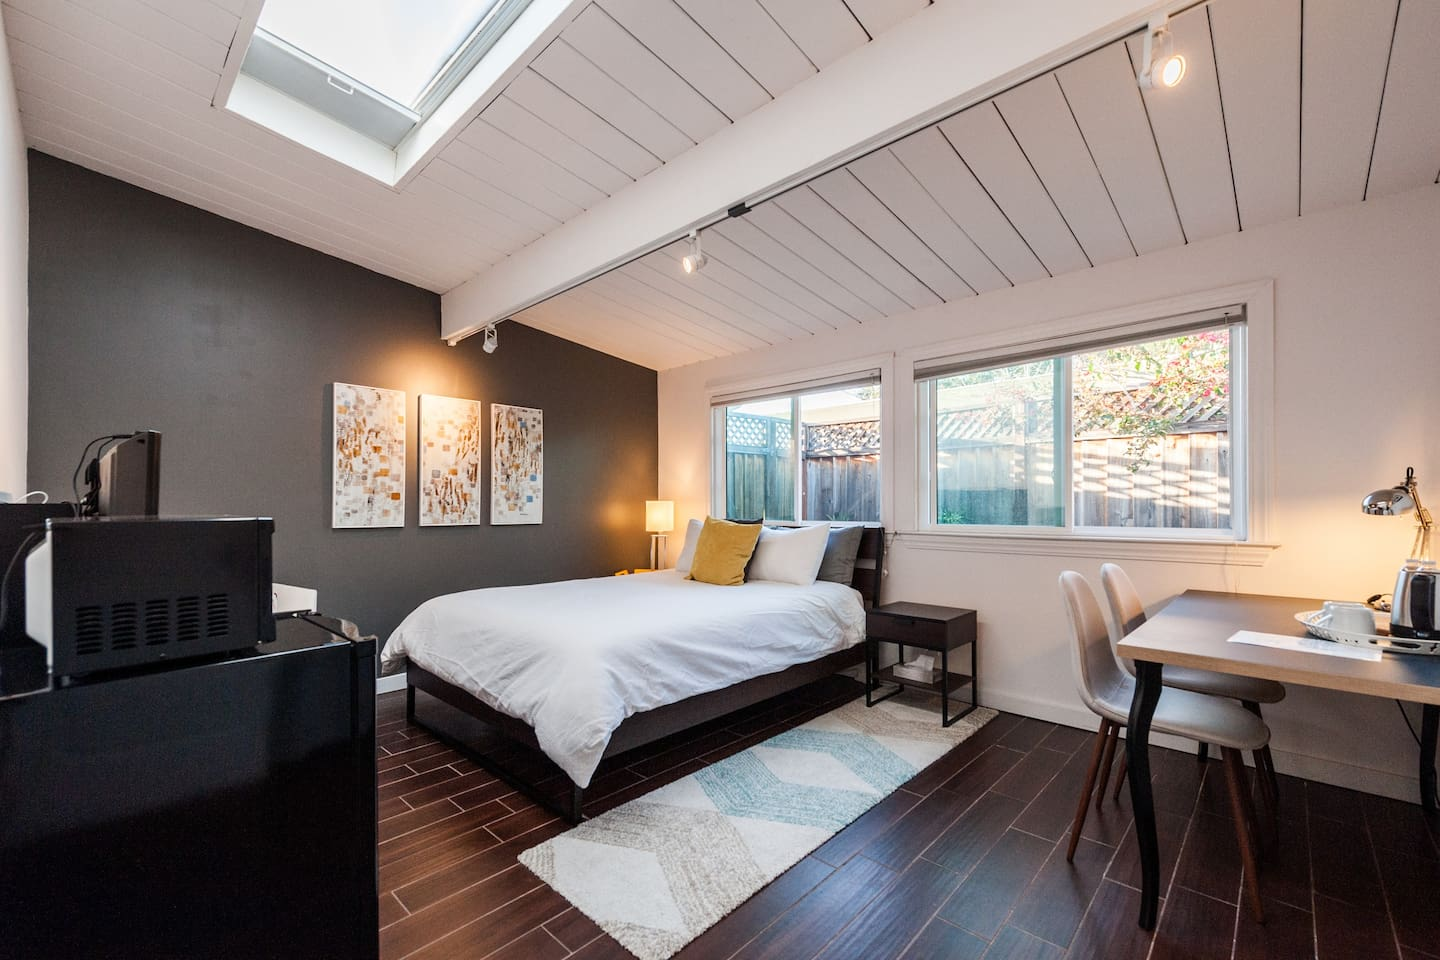 Spacious bedroom with skylight.